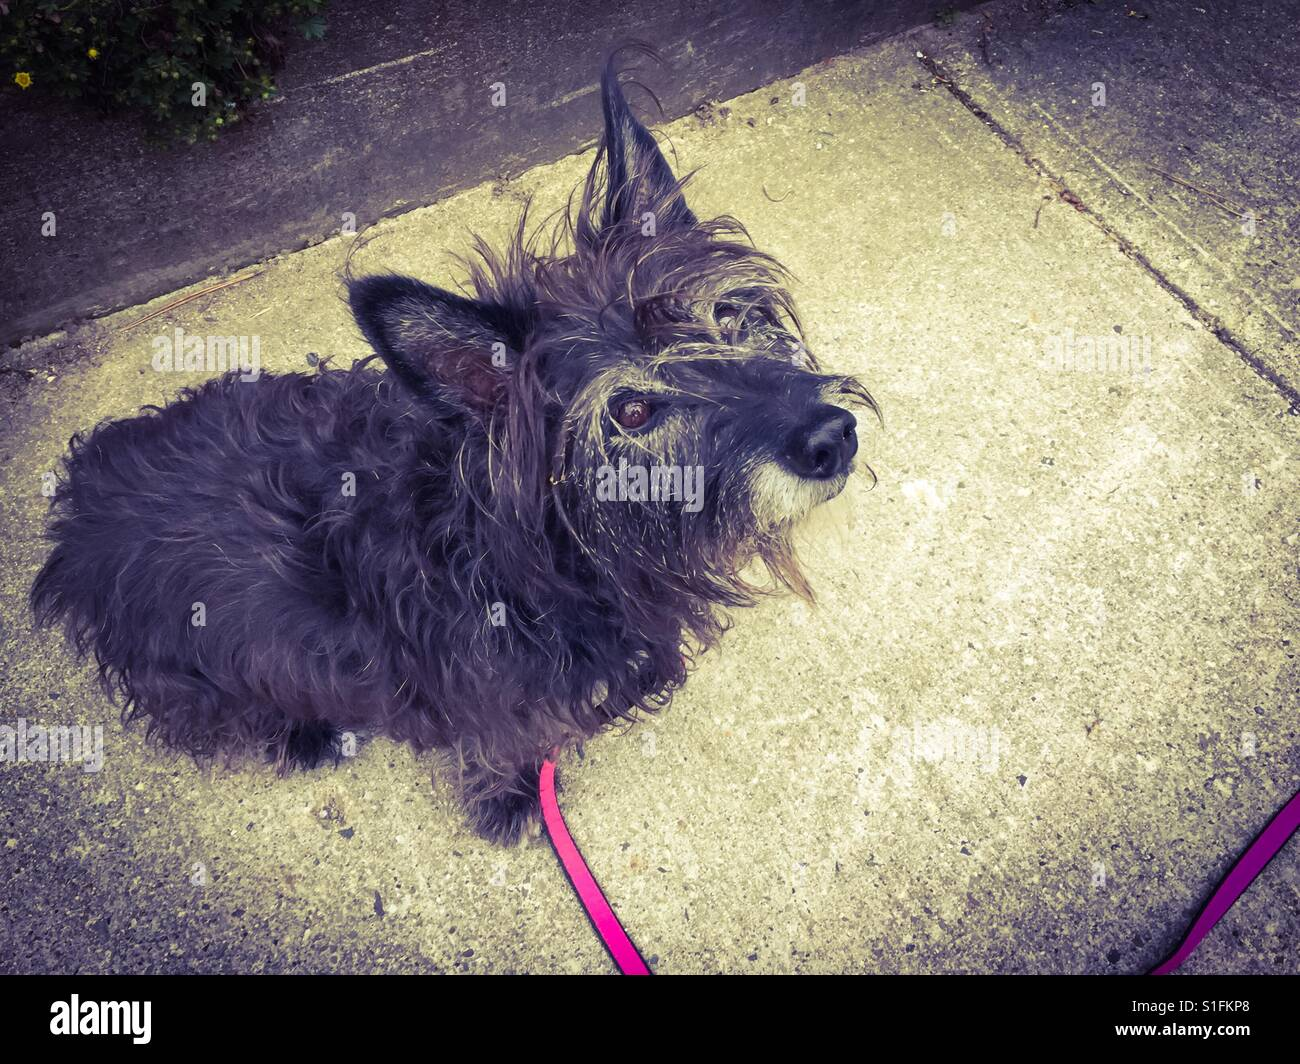 Small, old dog - Stock Image